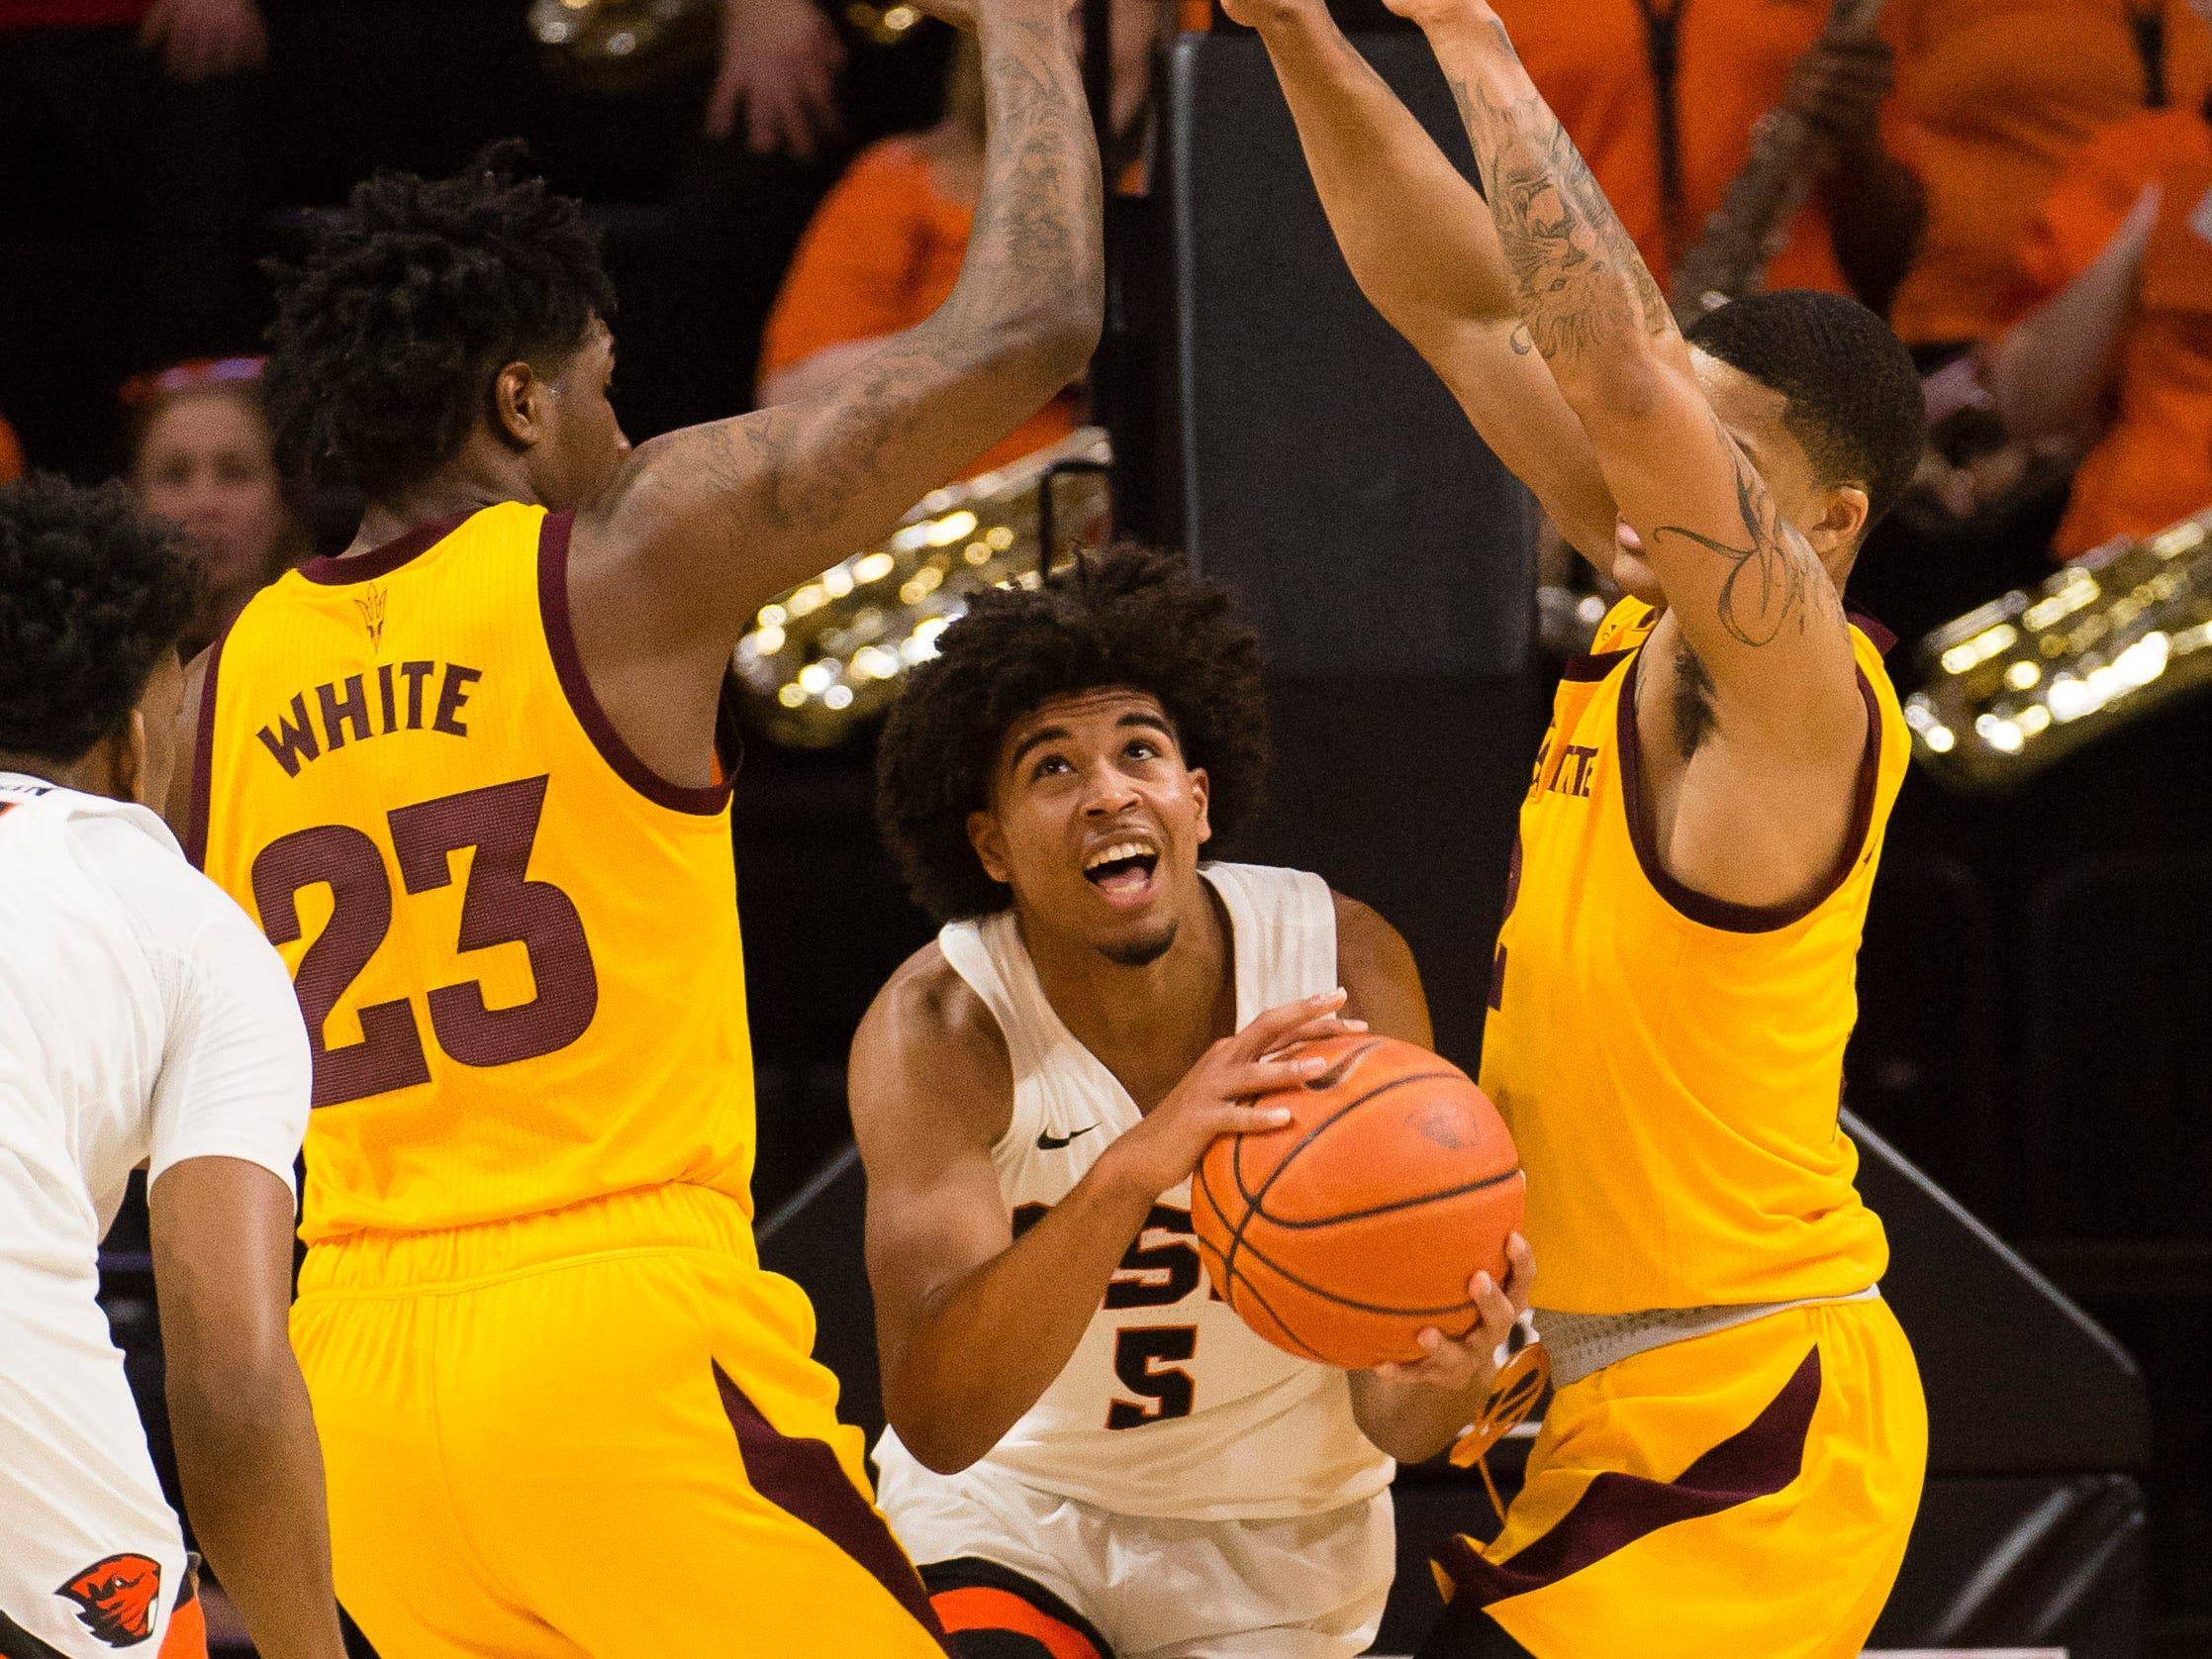 Mar 3, 2019; Corvallis, OR, USA; Oregon State Beavers guard Ethan Thompson (5) is defended by Arizona State Sun Devils forward Romello White (23) and guard Rob Edwards (2) during the first half at Gill Coliseum.